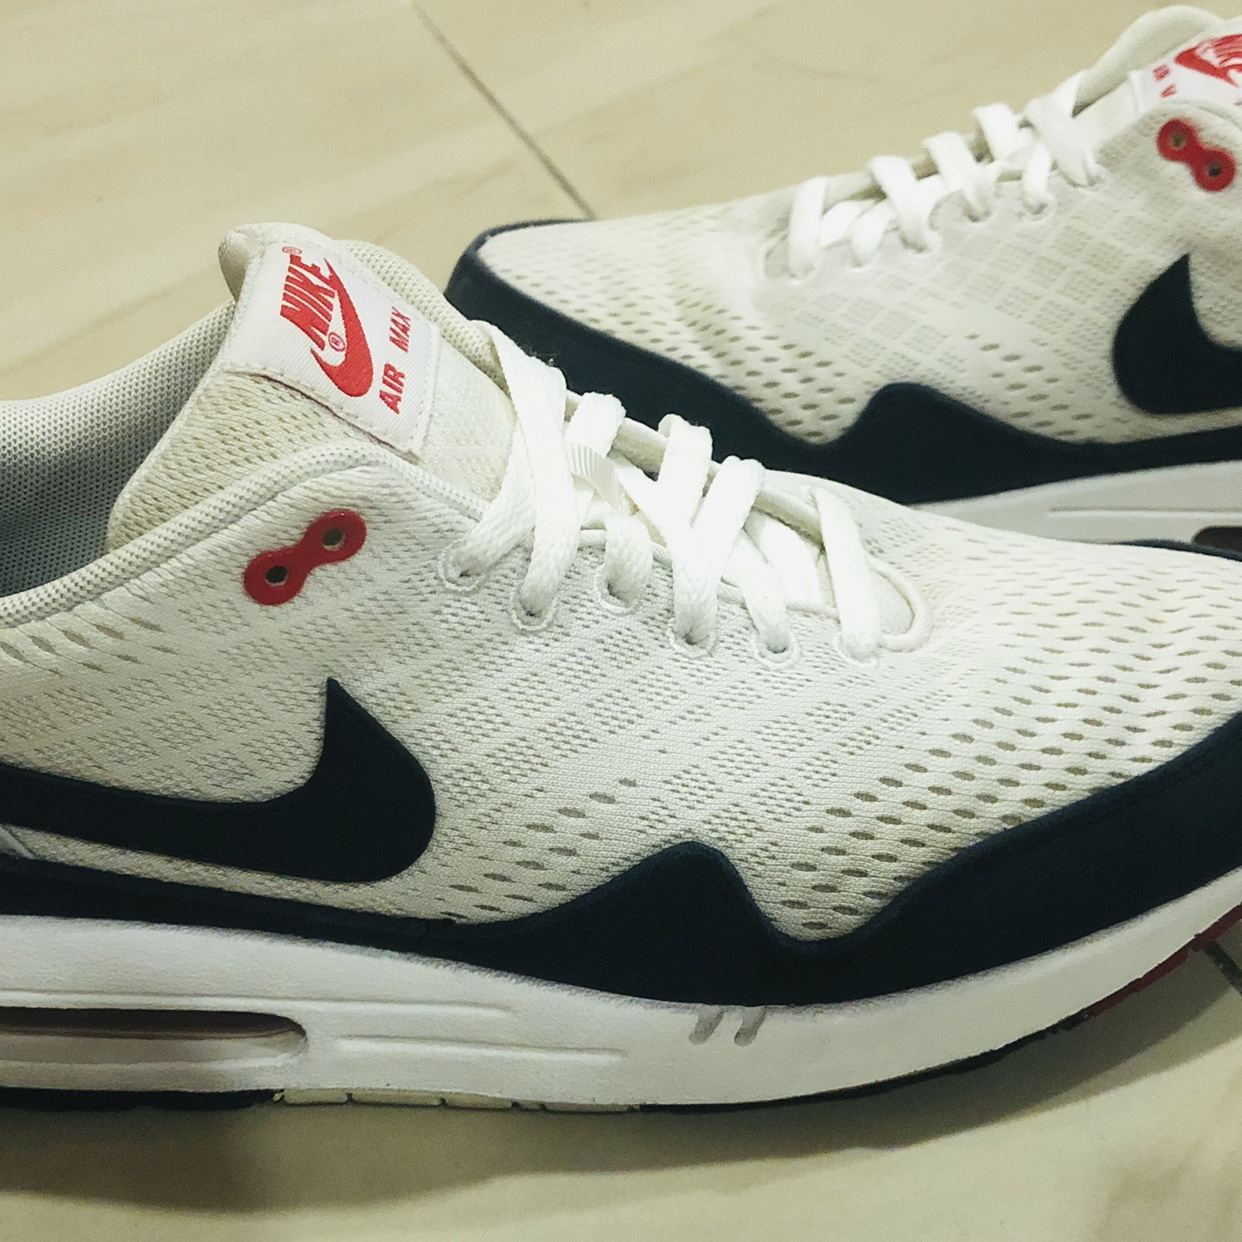 lowest price new arrivals buy online 2013 Nike Air Max 1 OG Obsidian Size 12. Condition... - Depop